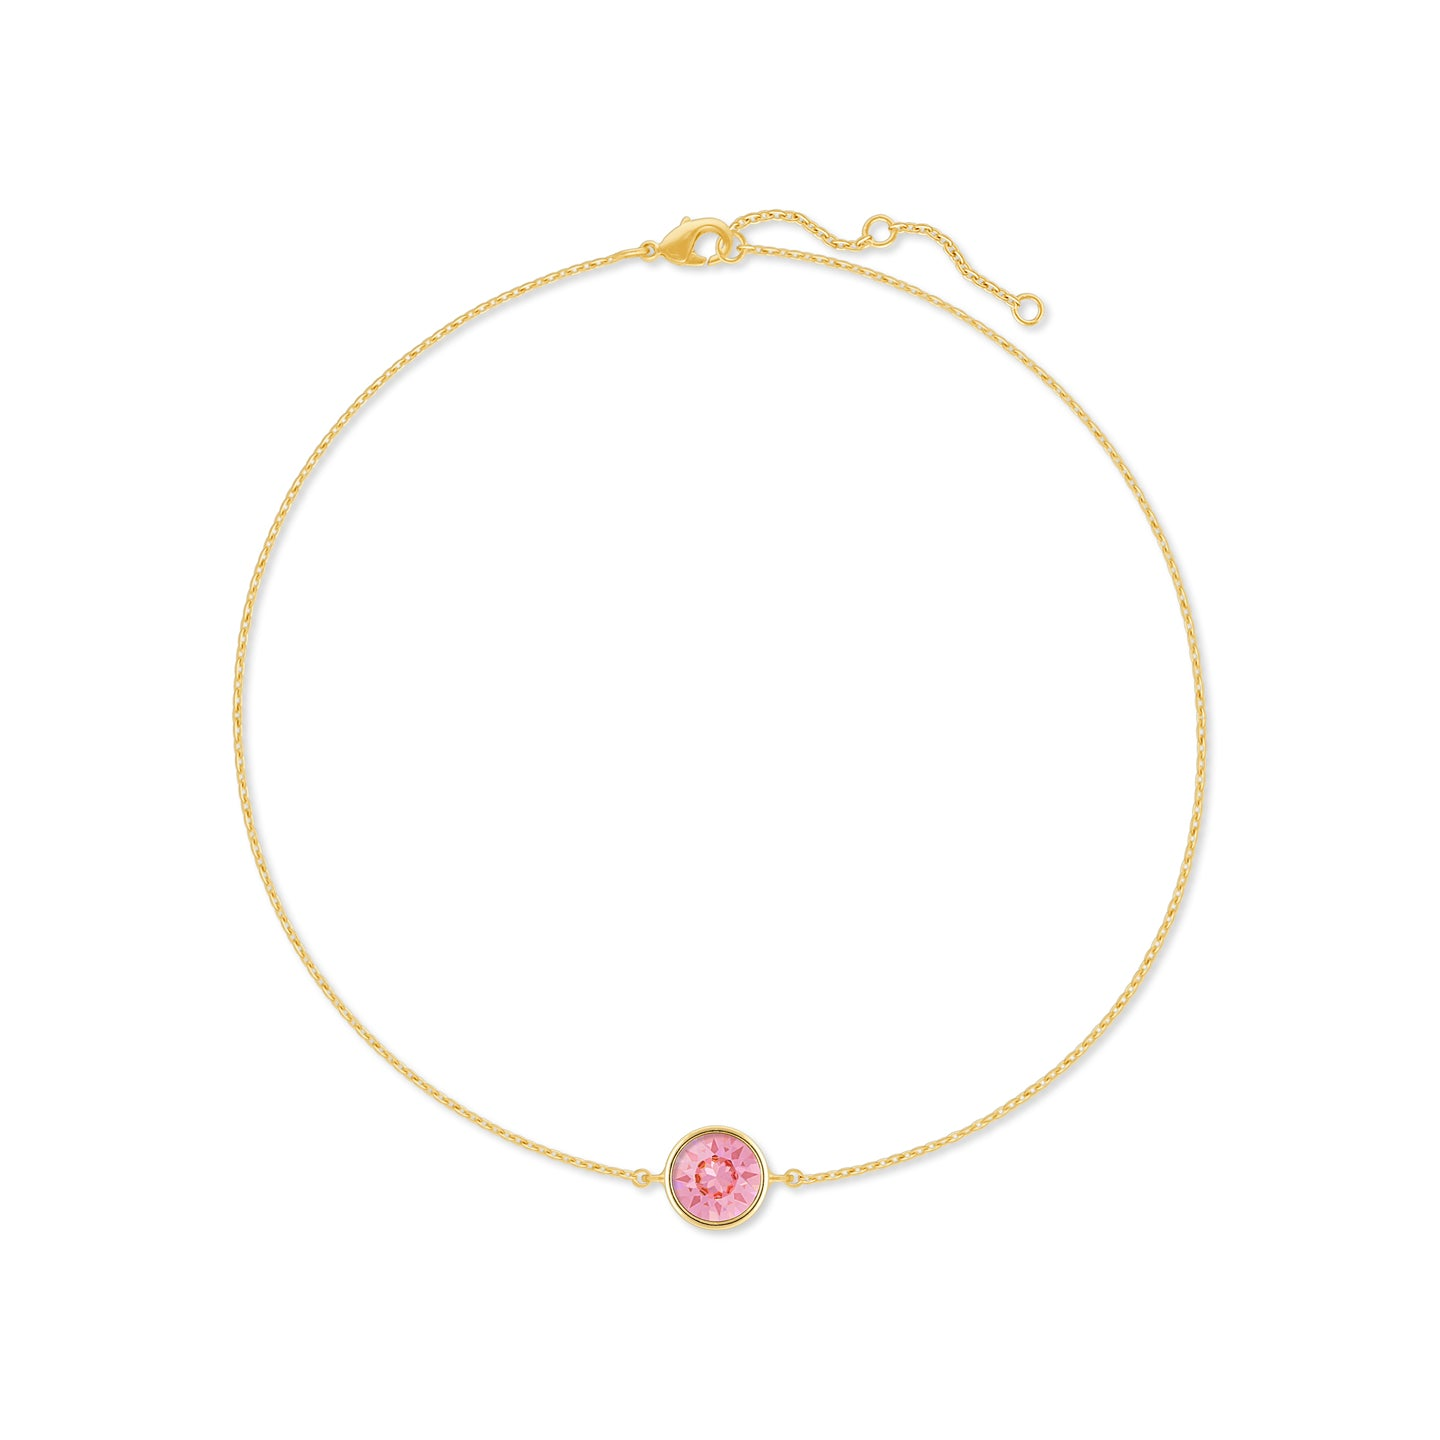 Harley Chain Bracelet with Pink Light Rose Round Crystals from Swarovski Gold Plated - Ed Heart